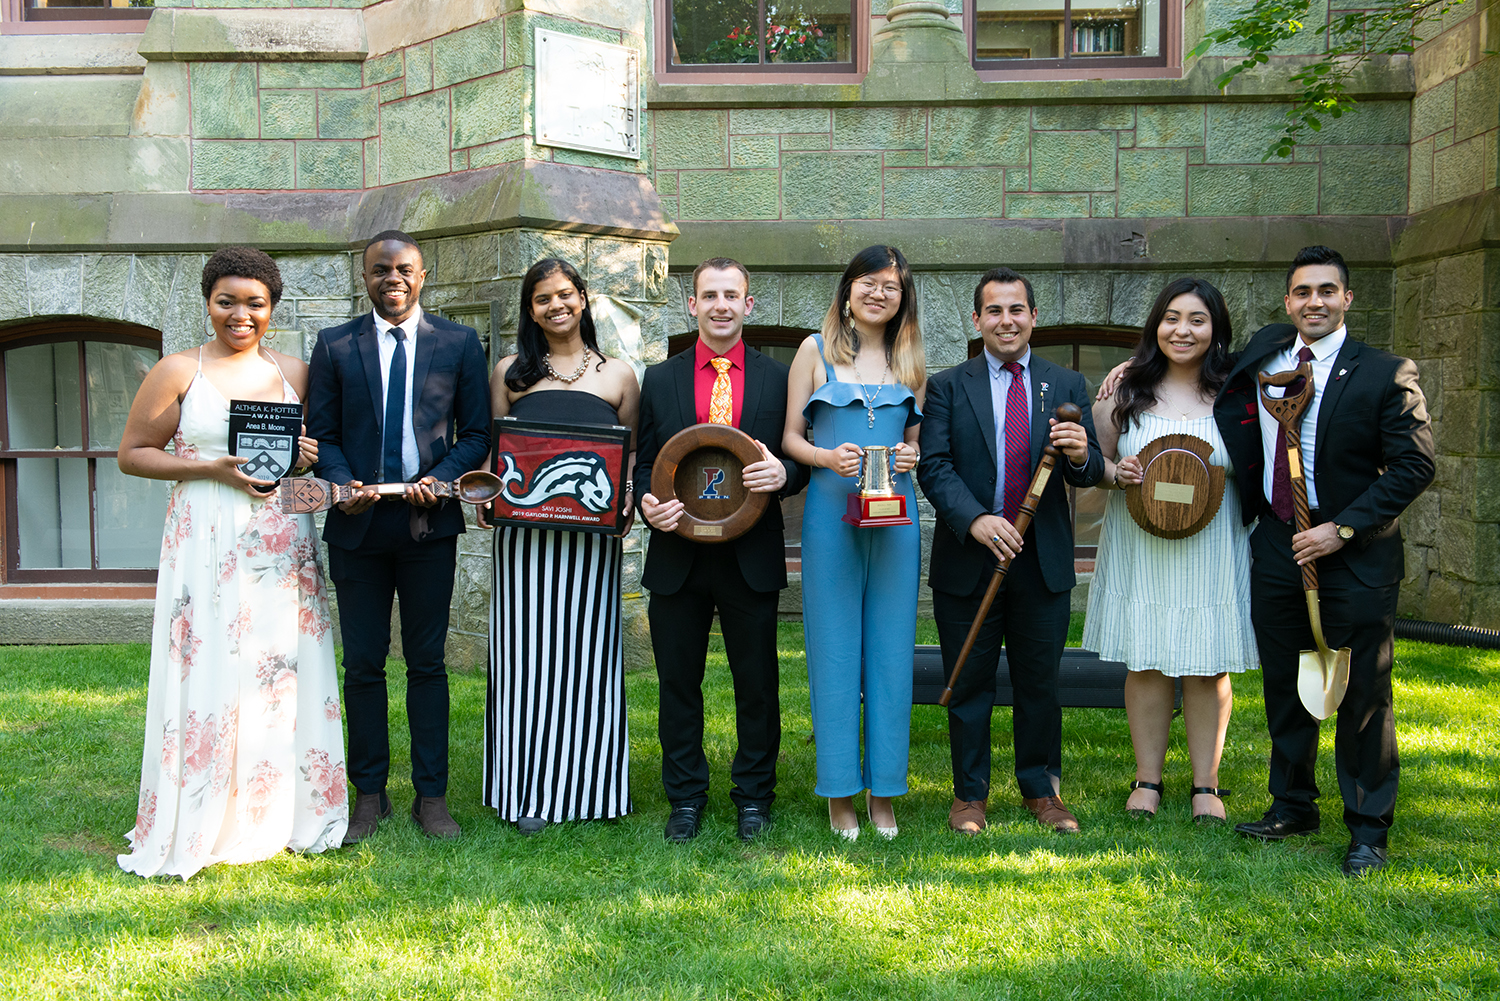 Class of 2019 Ivy Day Ceremony and awardees | Penn Today